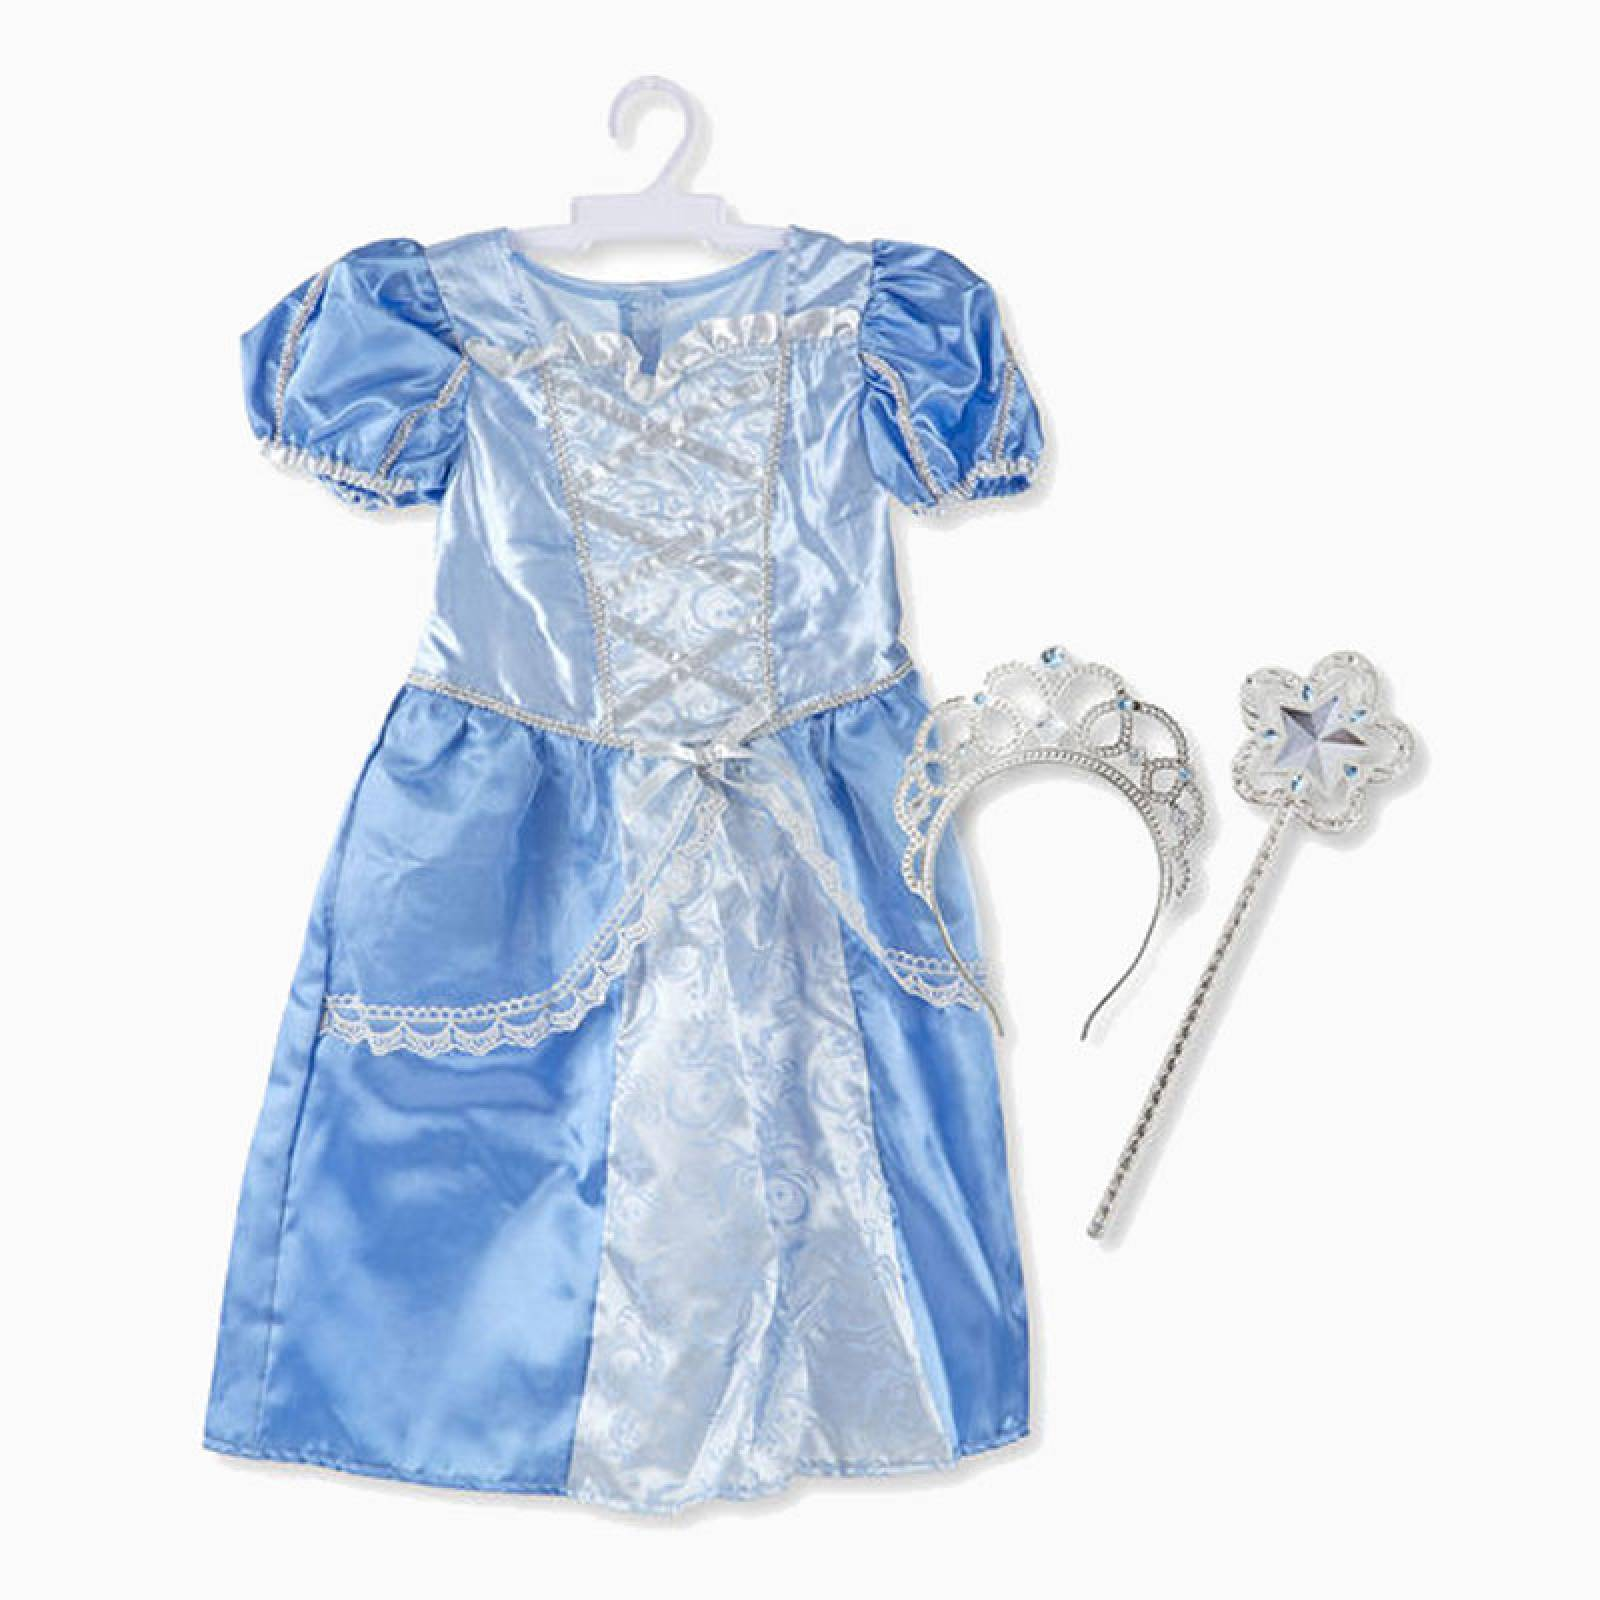 ROYAL PRINCESS Blue Role Play Costume Set By Melissa & Doug 3-6y